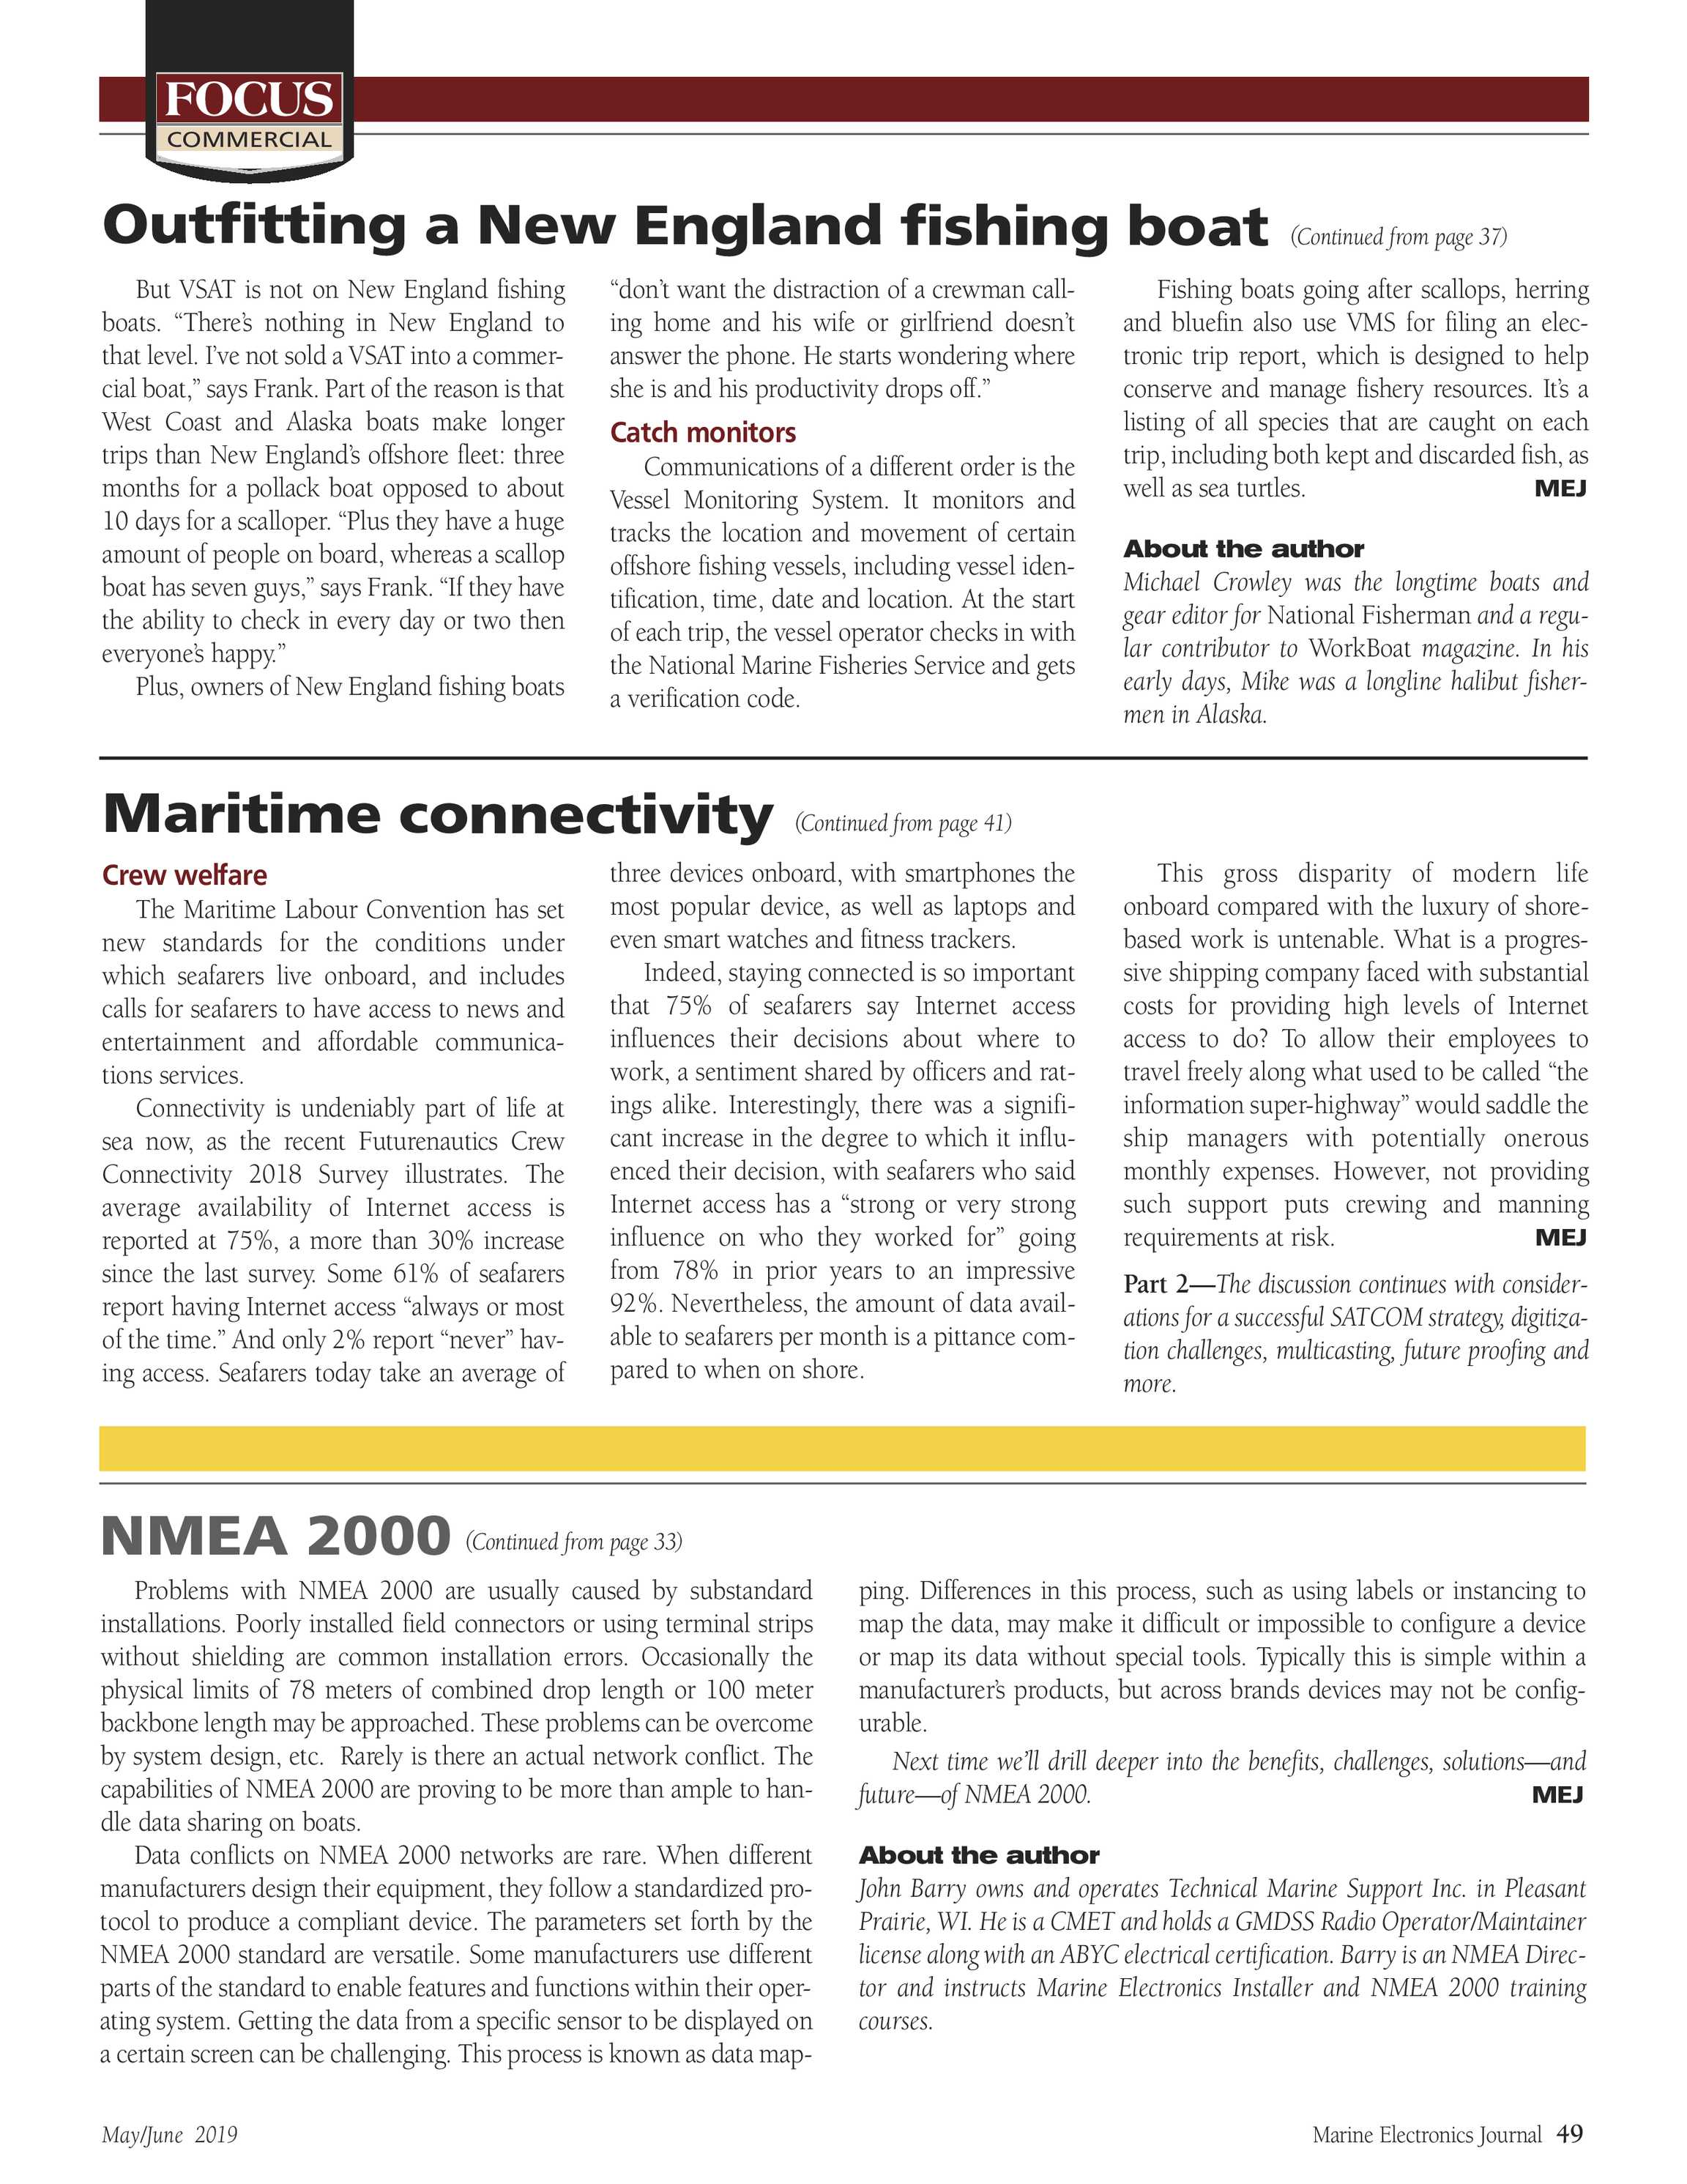 ME Marine Electronics - May/June 2019 - page 49